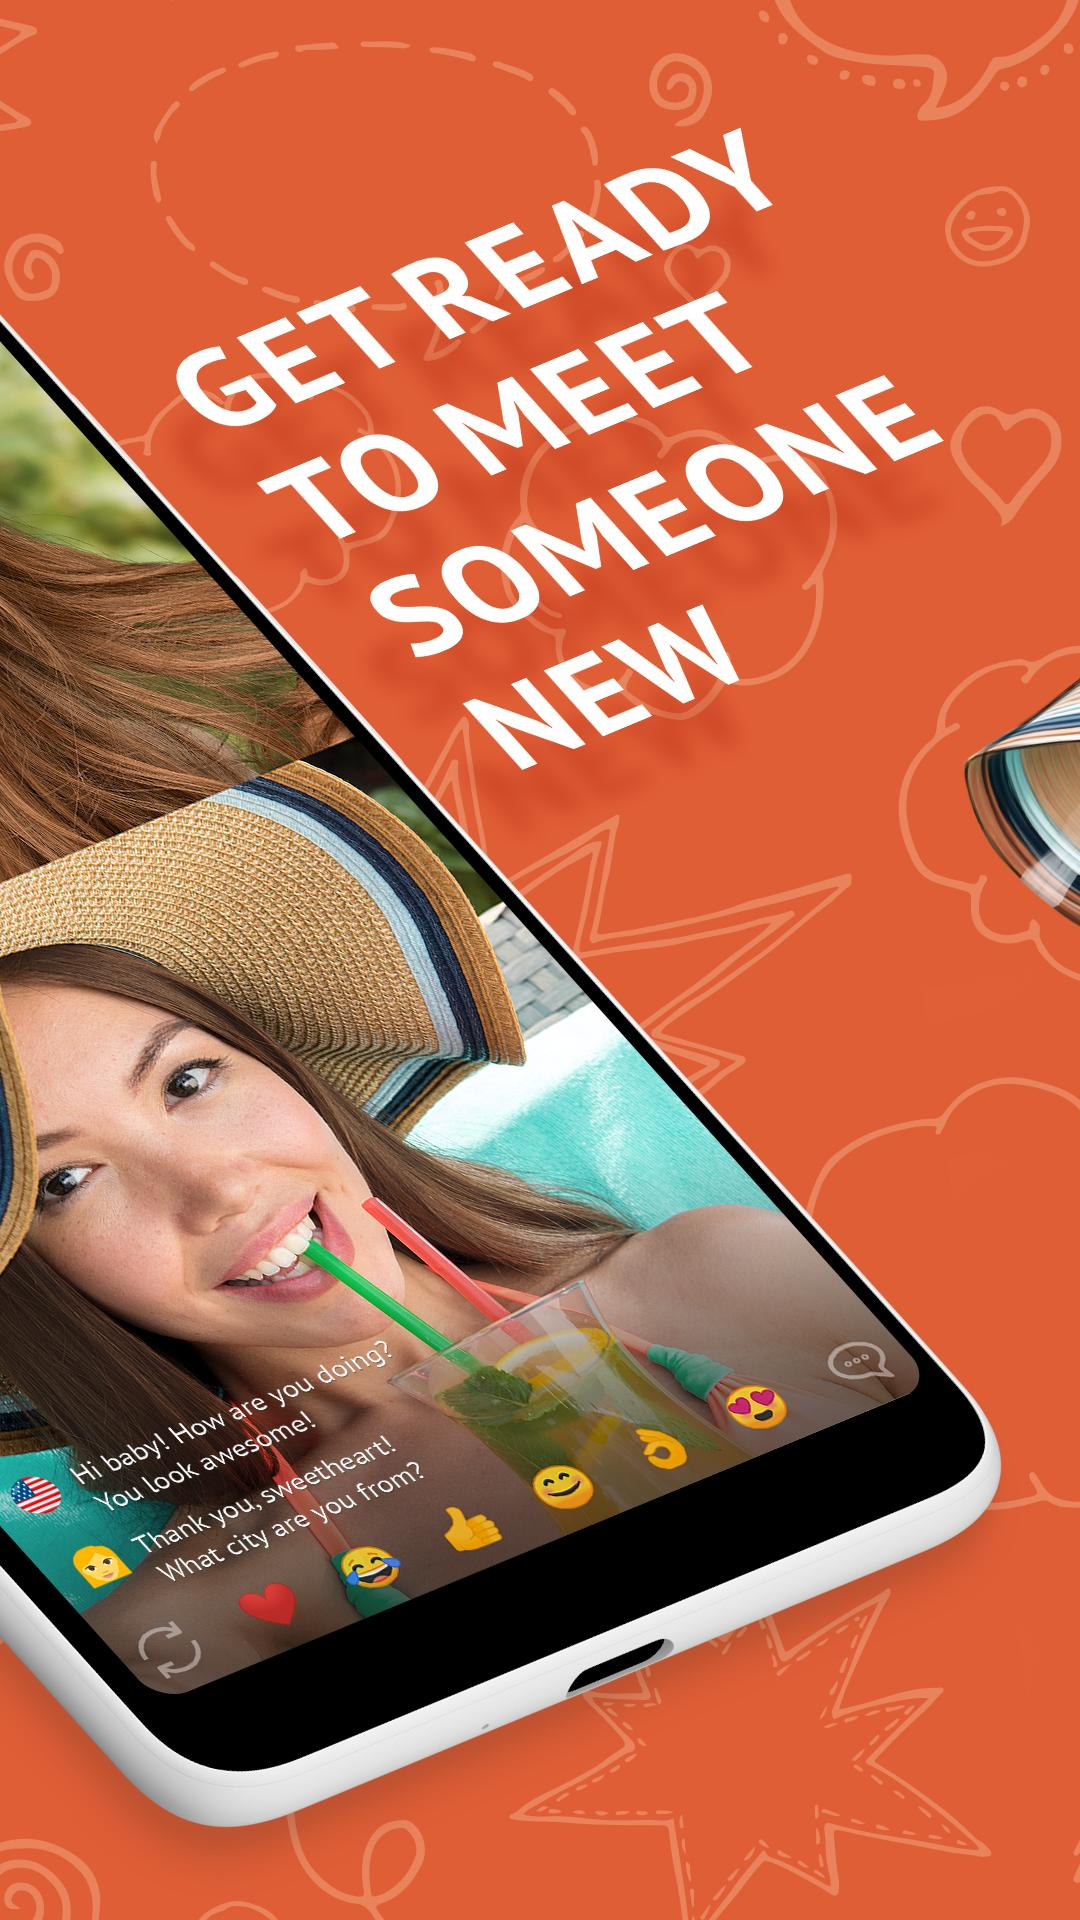 OmeTV for Android - APK Download